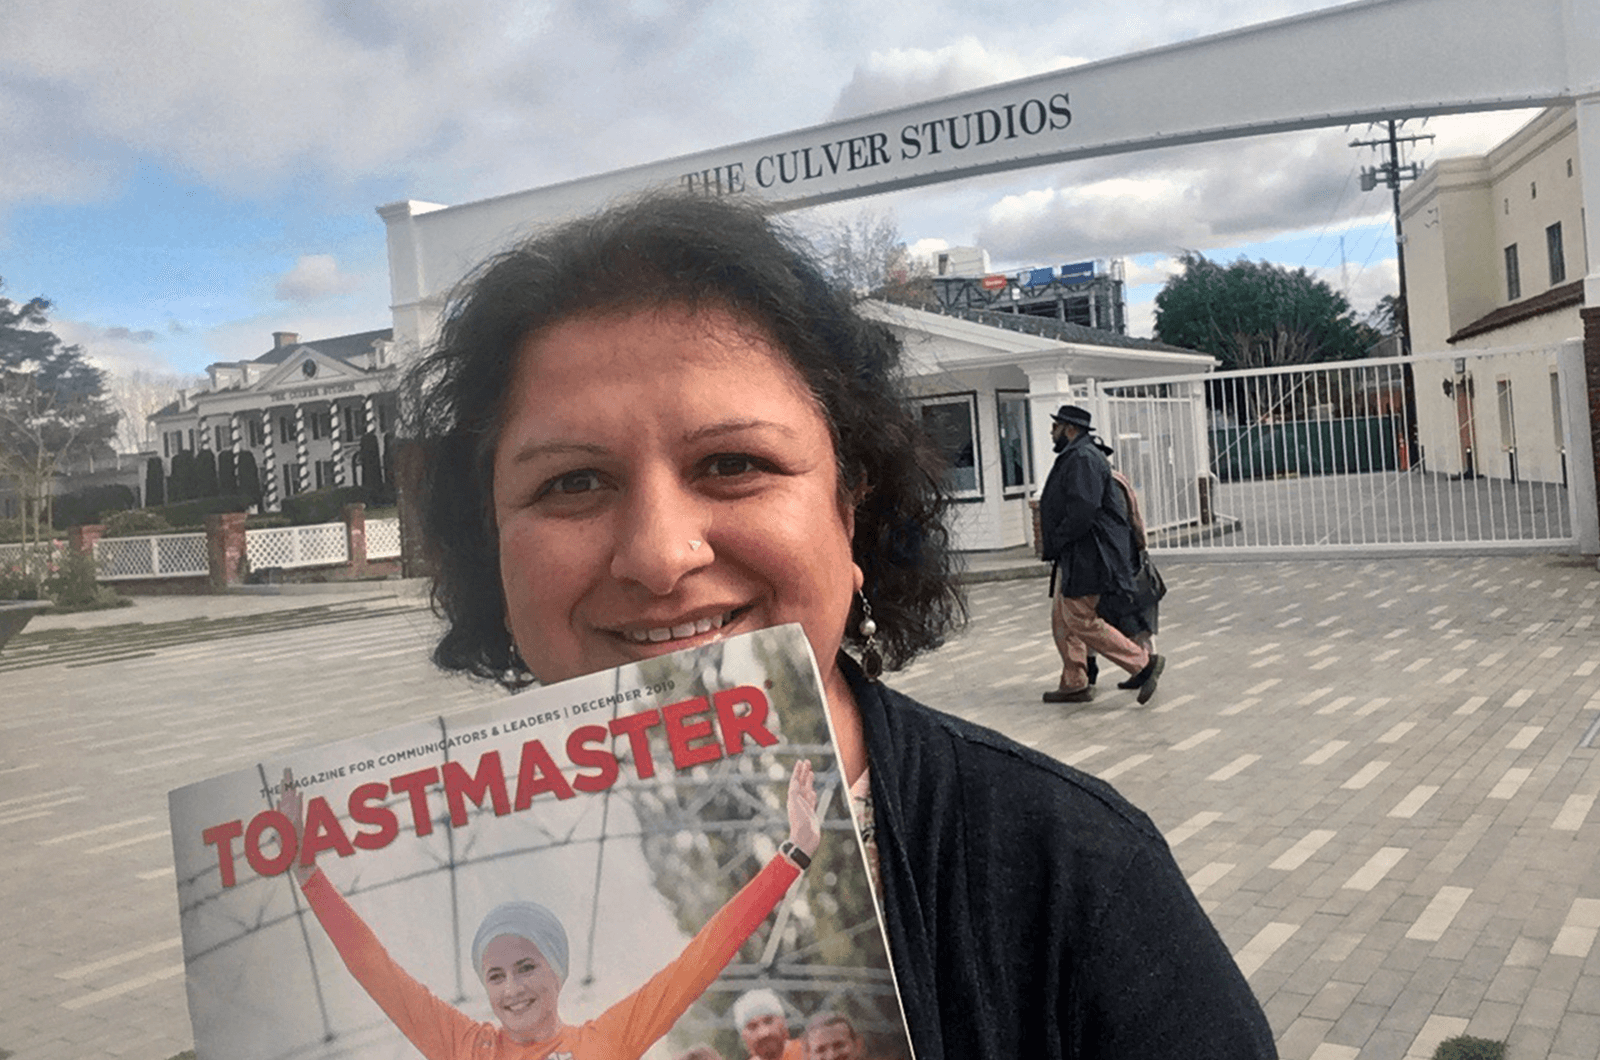 Anita Devi of Milton Keynes, England, United Kingdom, stands in front of The Culver Studios, in Culver City, California, on Boxing Day 2019.